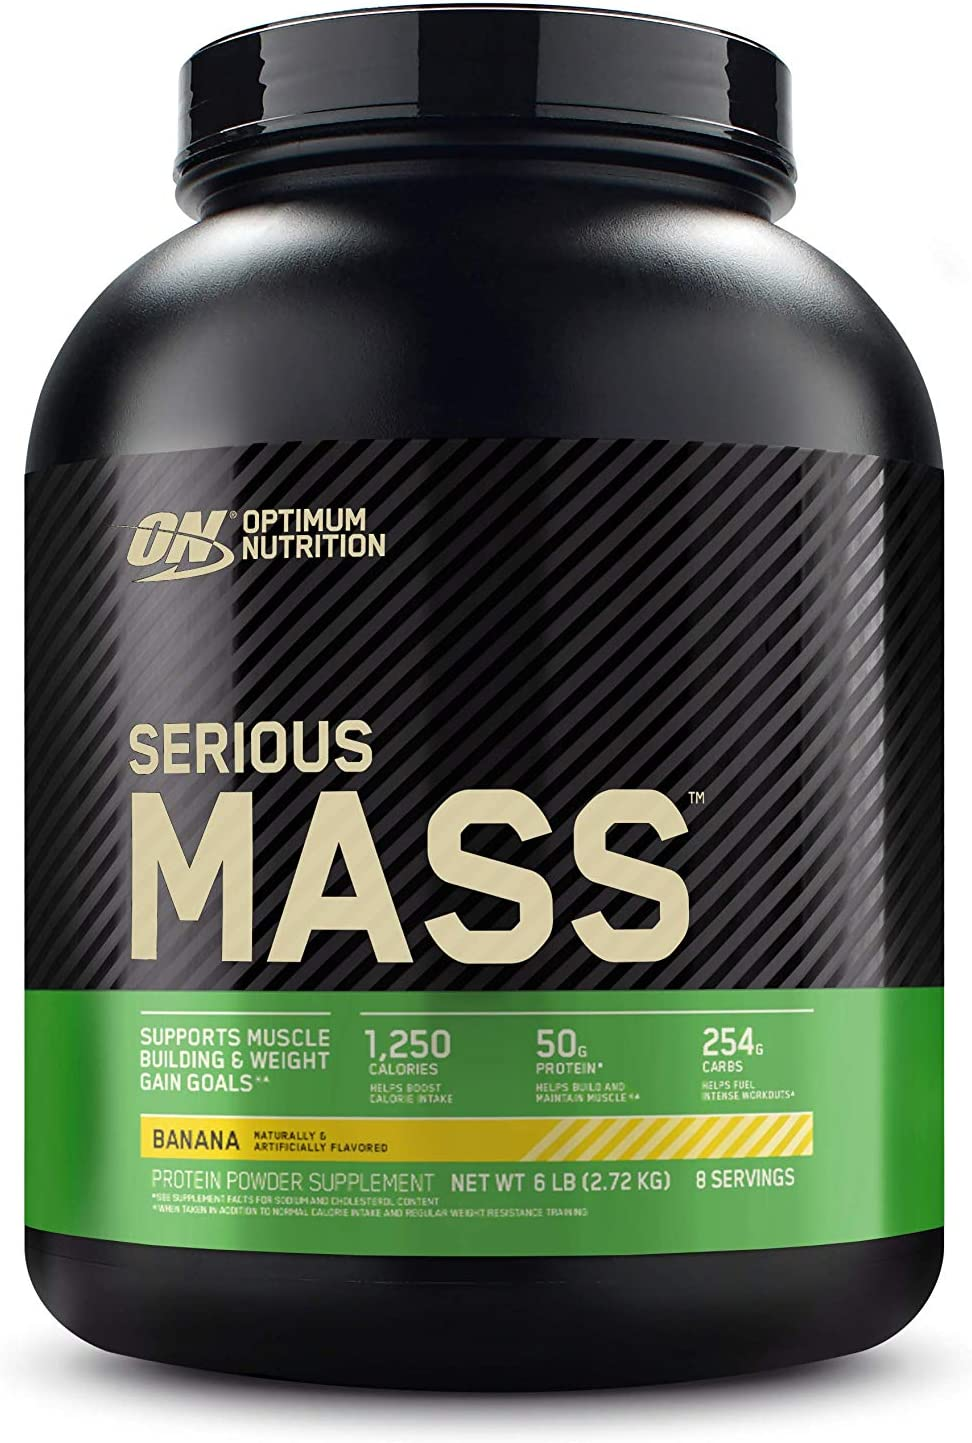 Optimum Nutrition Serious Mass Weight Gainer Protein Powder, Vitamin C, Zinc and Vitamin D for Immune Support, Banana, 6 Pound (Packaging May Vary)